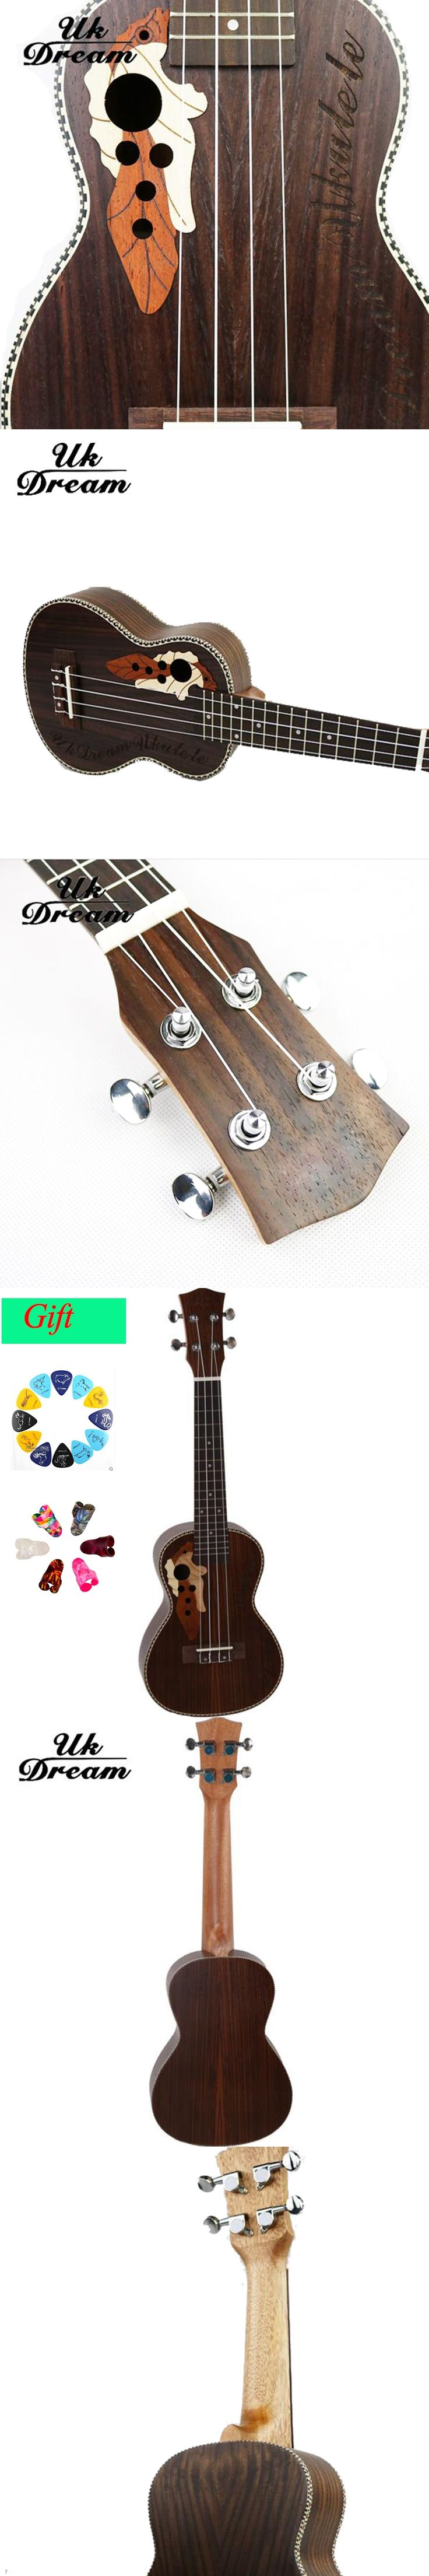 acoustic guitar 21 inch Ukulele 4 Strings Musical Instruments 15 Frets Pruce Sapele Chipping Knob